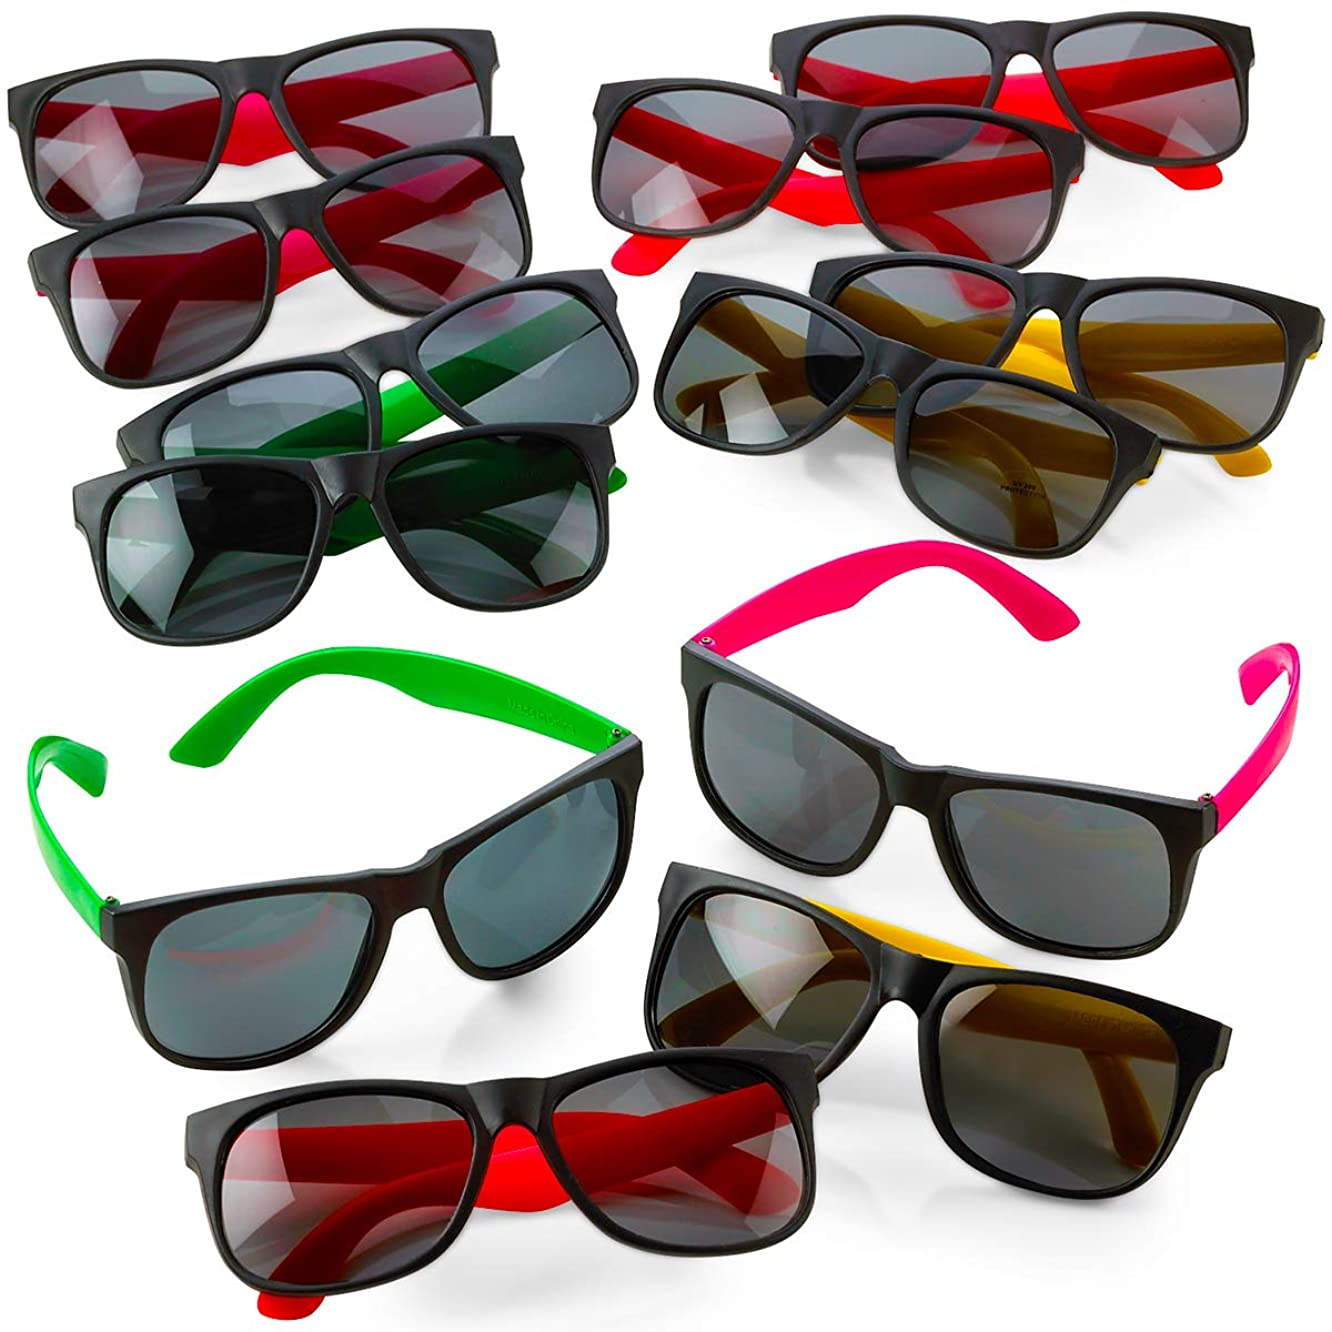 Kicko Neon Sunglasses with Dark Lenses - 12 Pack 80's Style Unisex Aviators in Assorted Colors - Gifts, Toys, Costume Props, Party Favors, Class Rewards, Getaway Accessories for Kids and Adults Alike